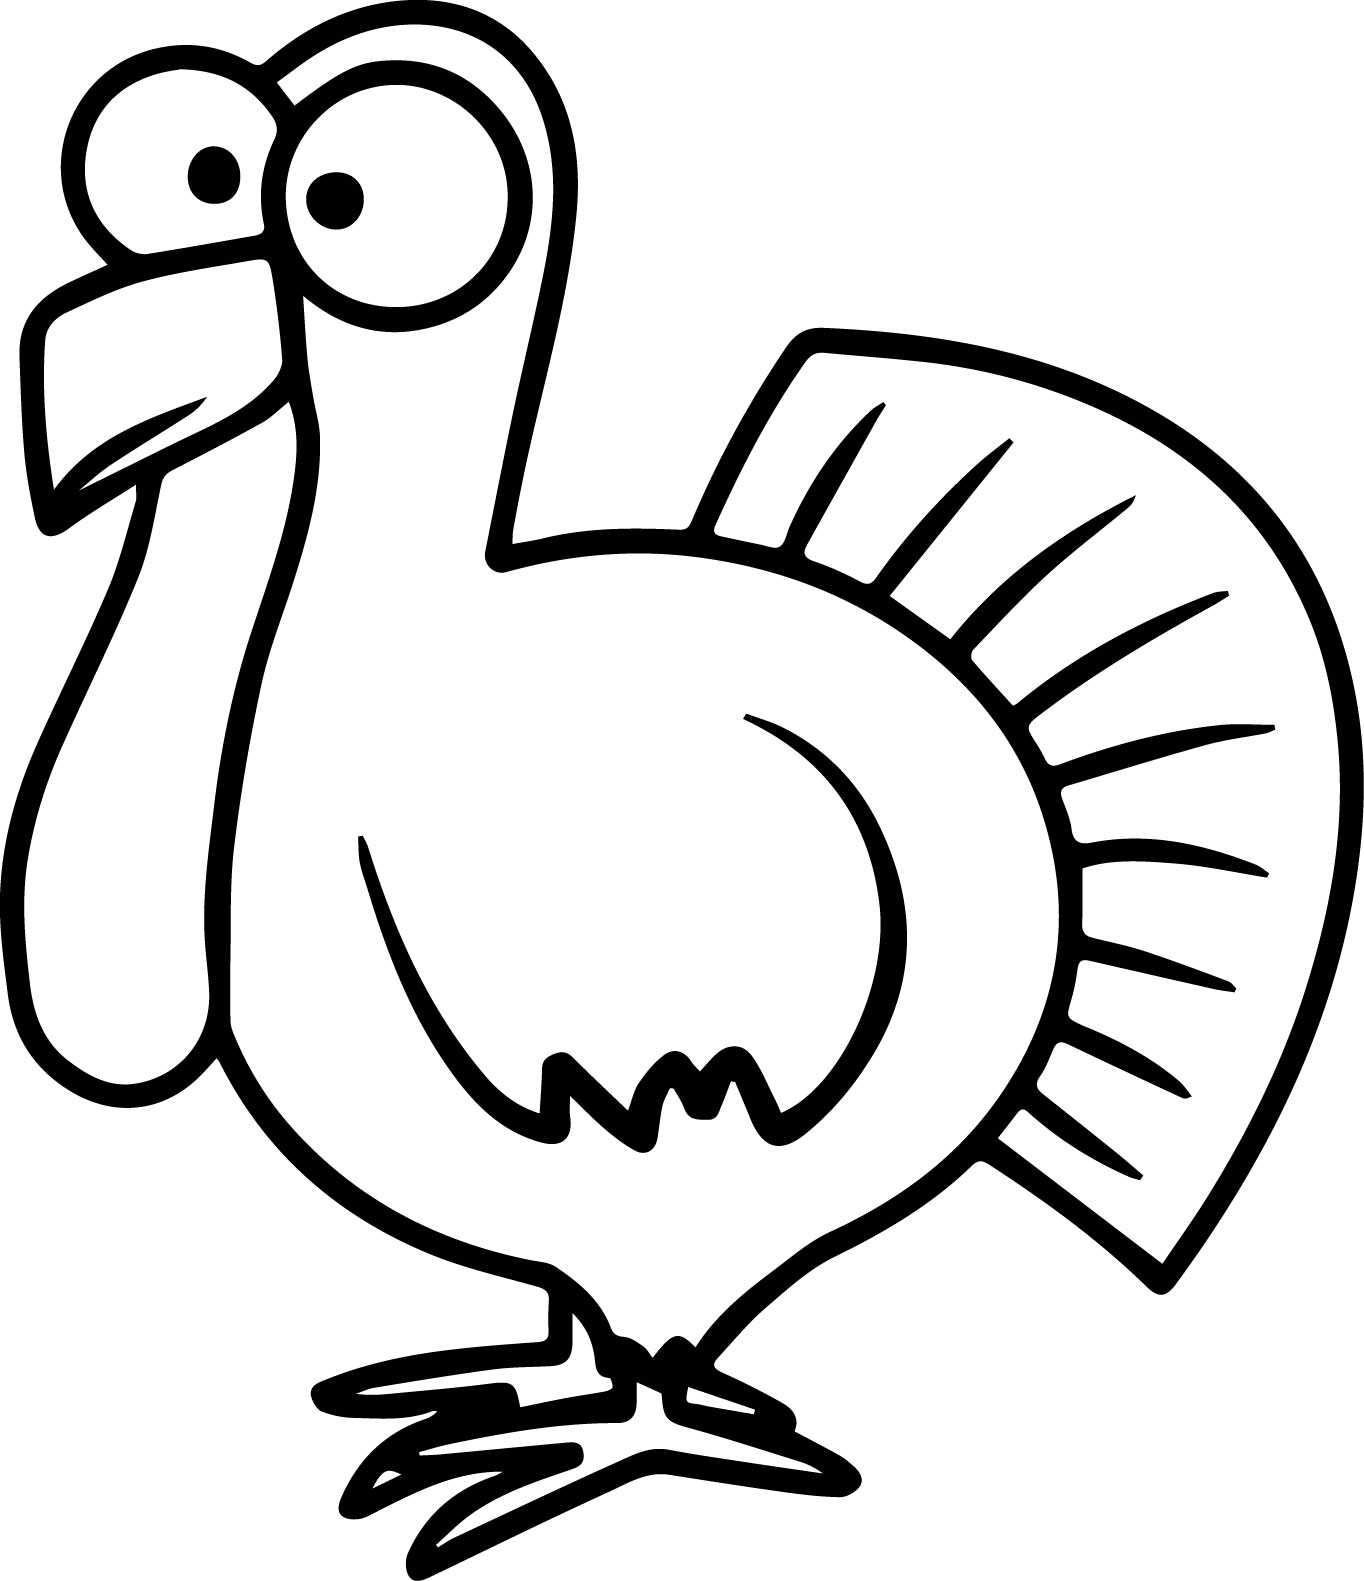 coloring cute turkey clipart free thanksgiving turkey images free download free clip clipart cute turkey coloring